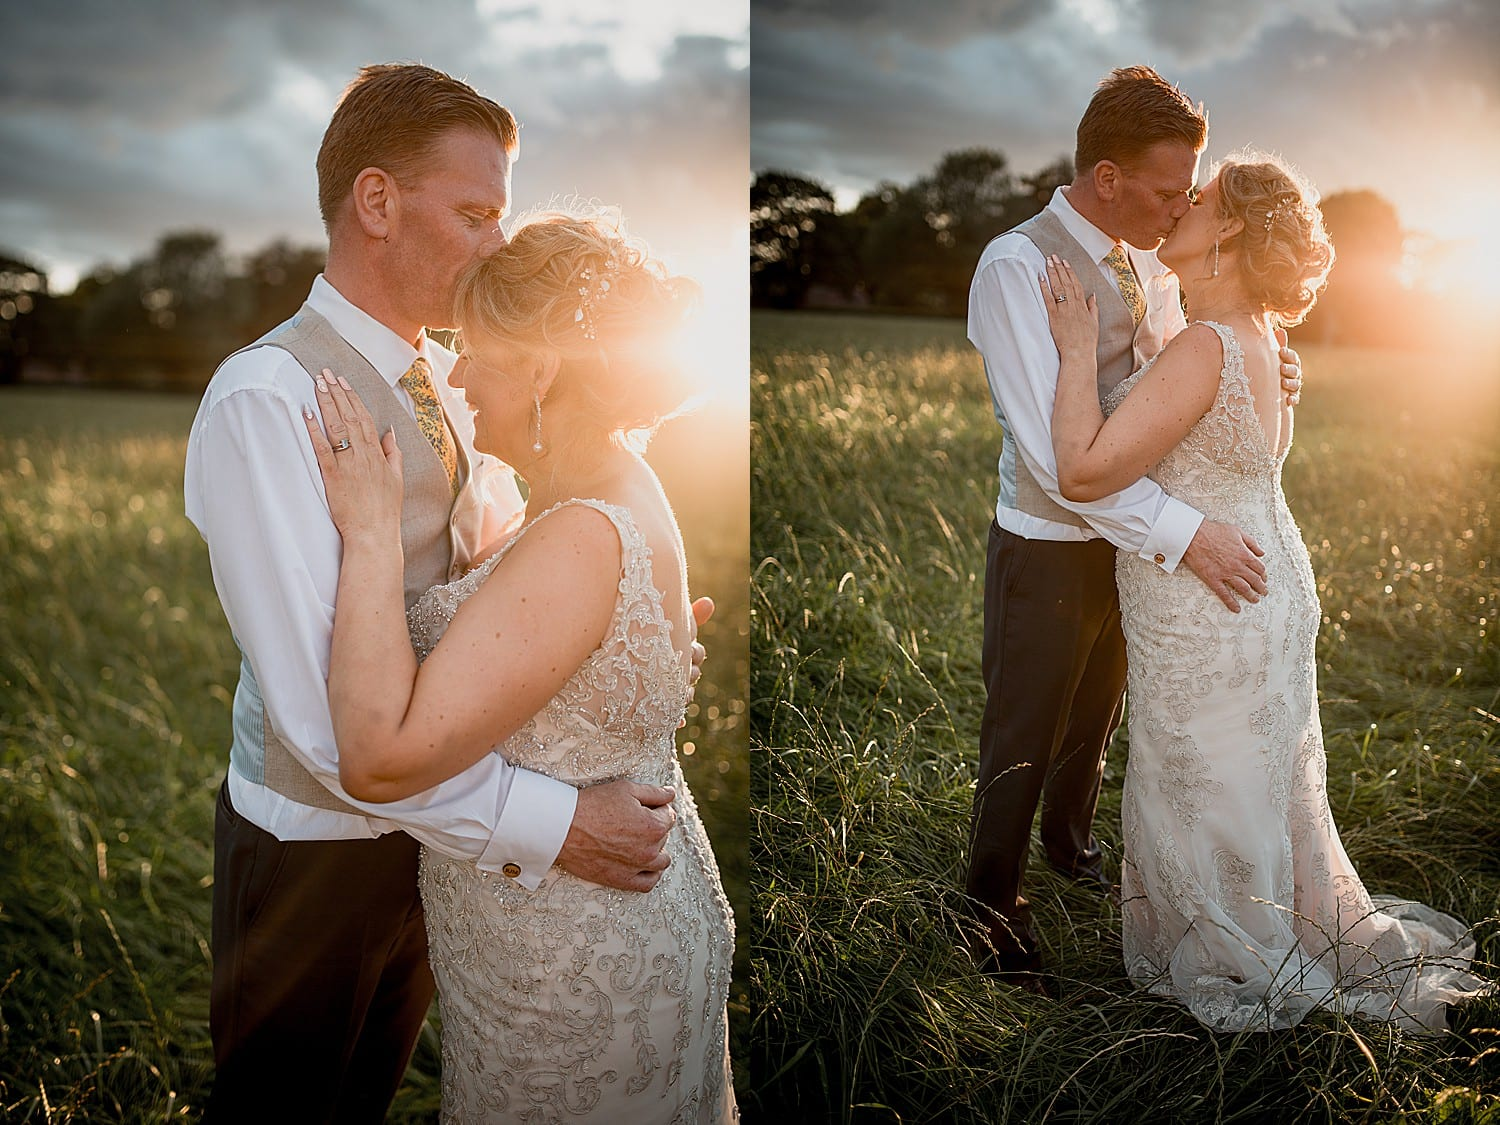 buddileigh farm wedding in betley cheshire